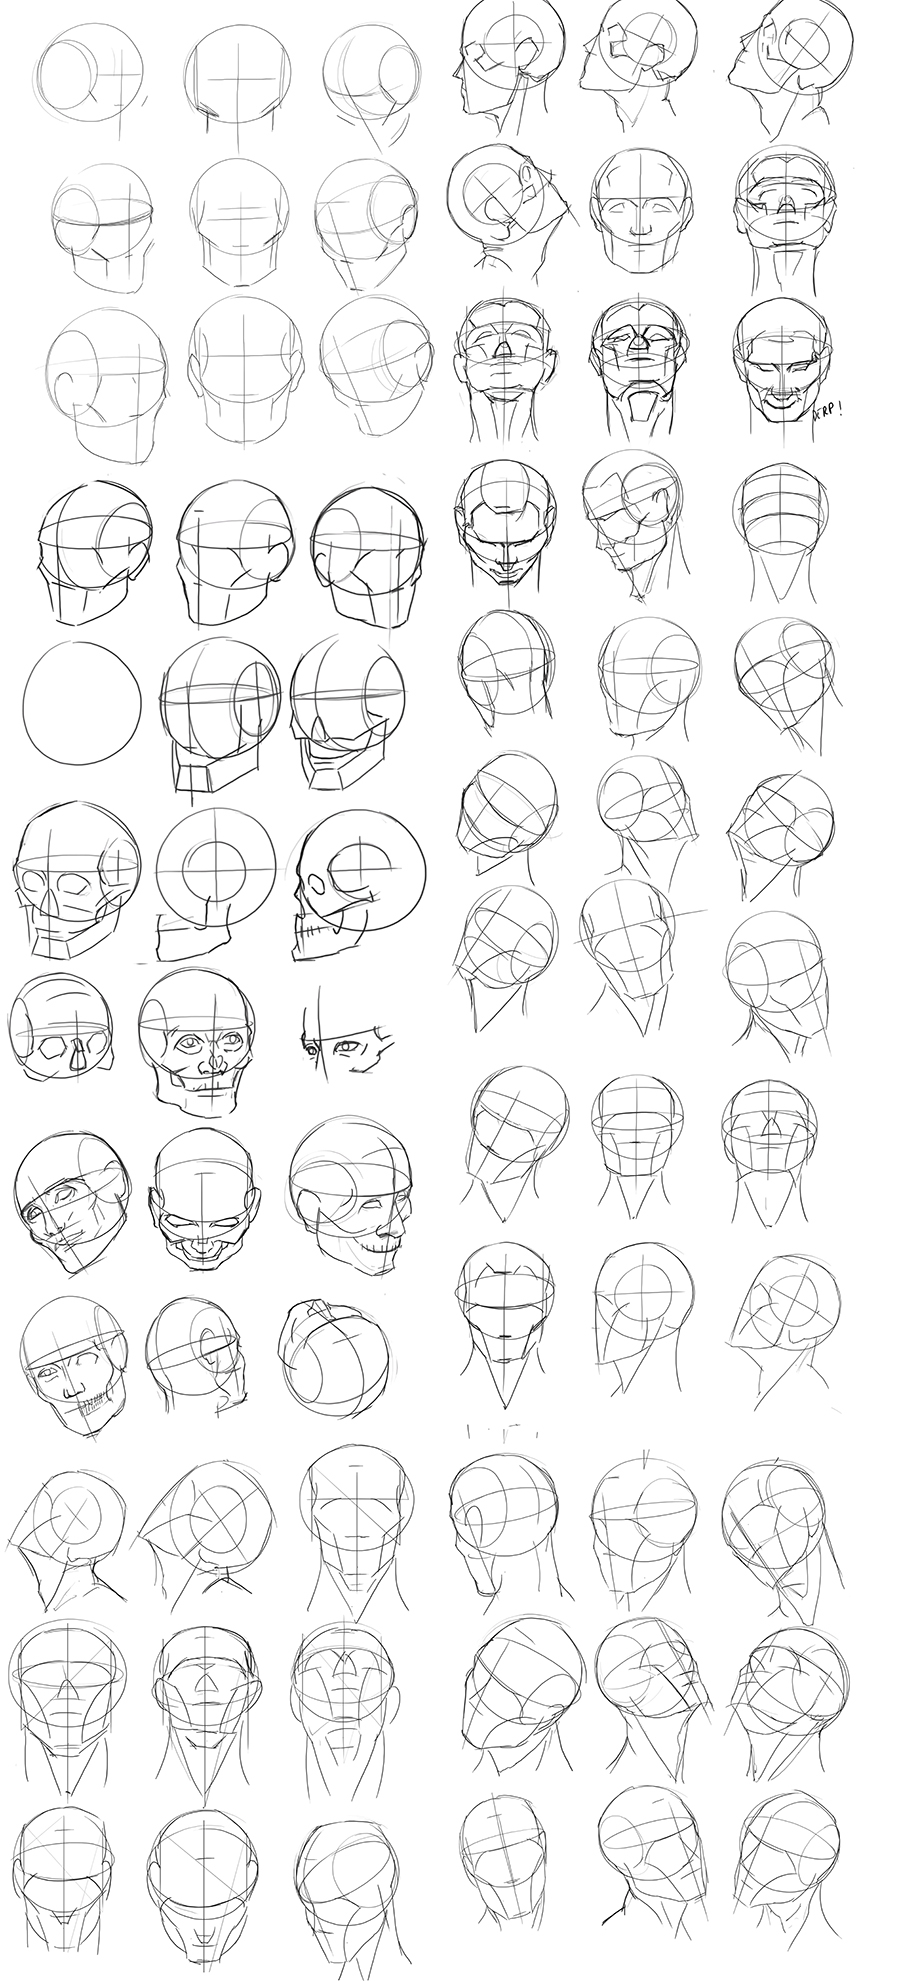 Practice drawing heads from different angles using Andrew Loomis' techniques.